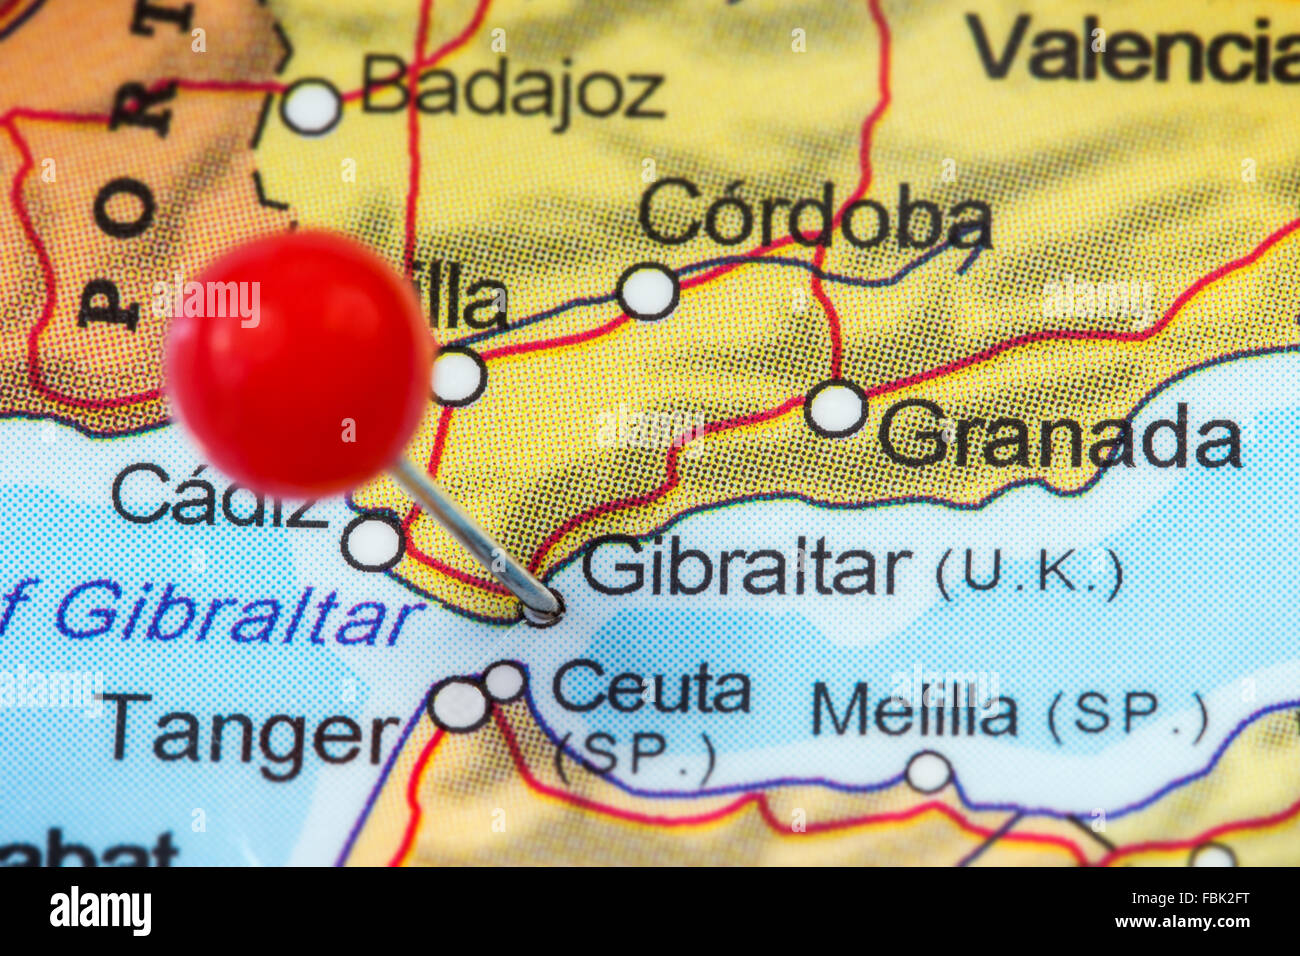 Closeup of a red pushpin in a map of Gibraltar Stock Photo